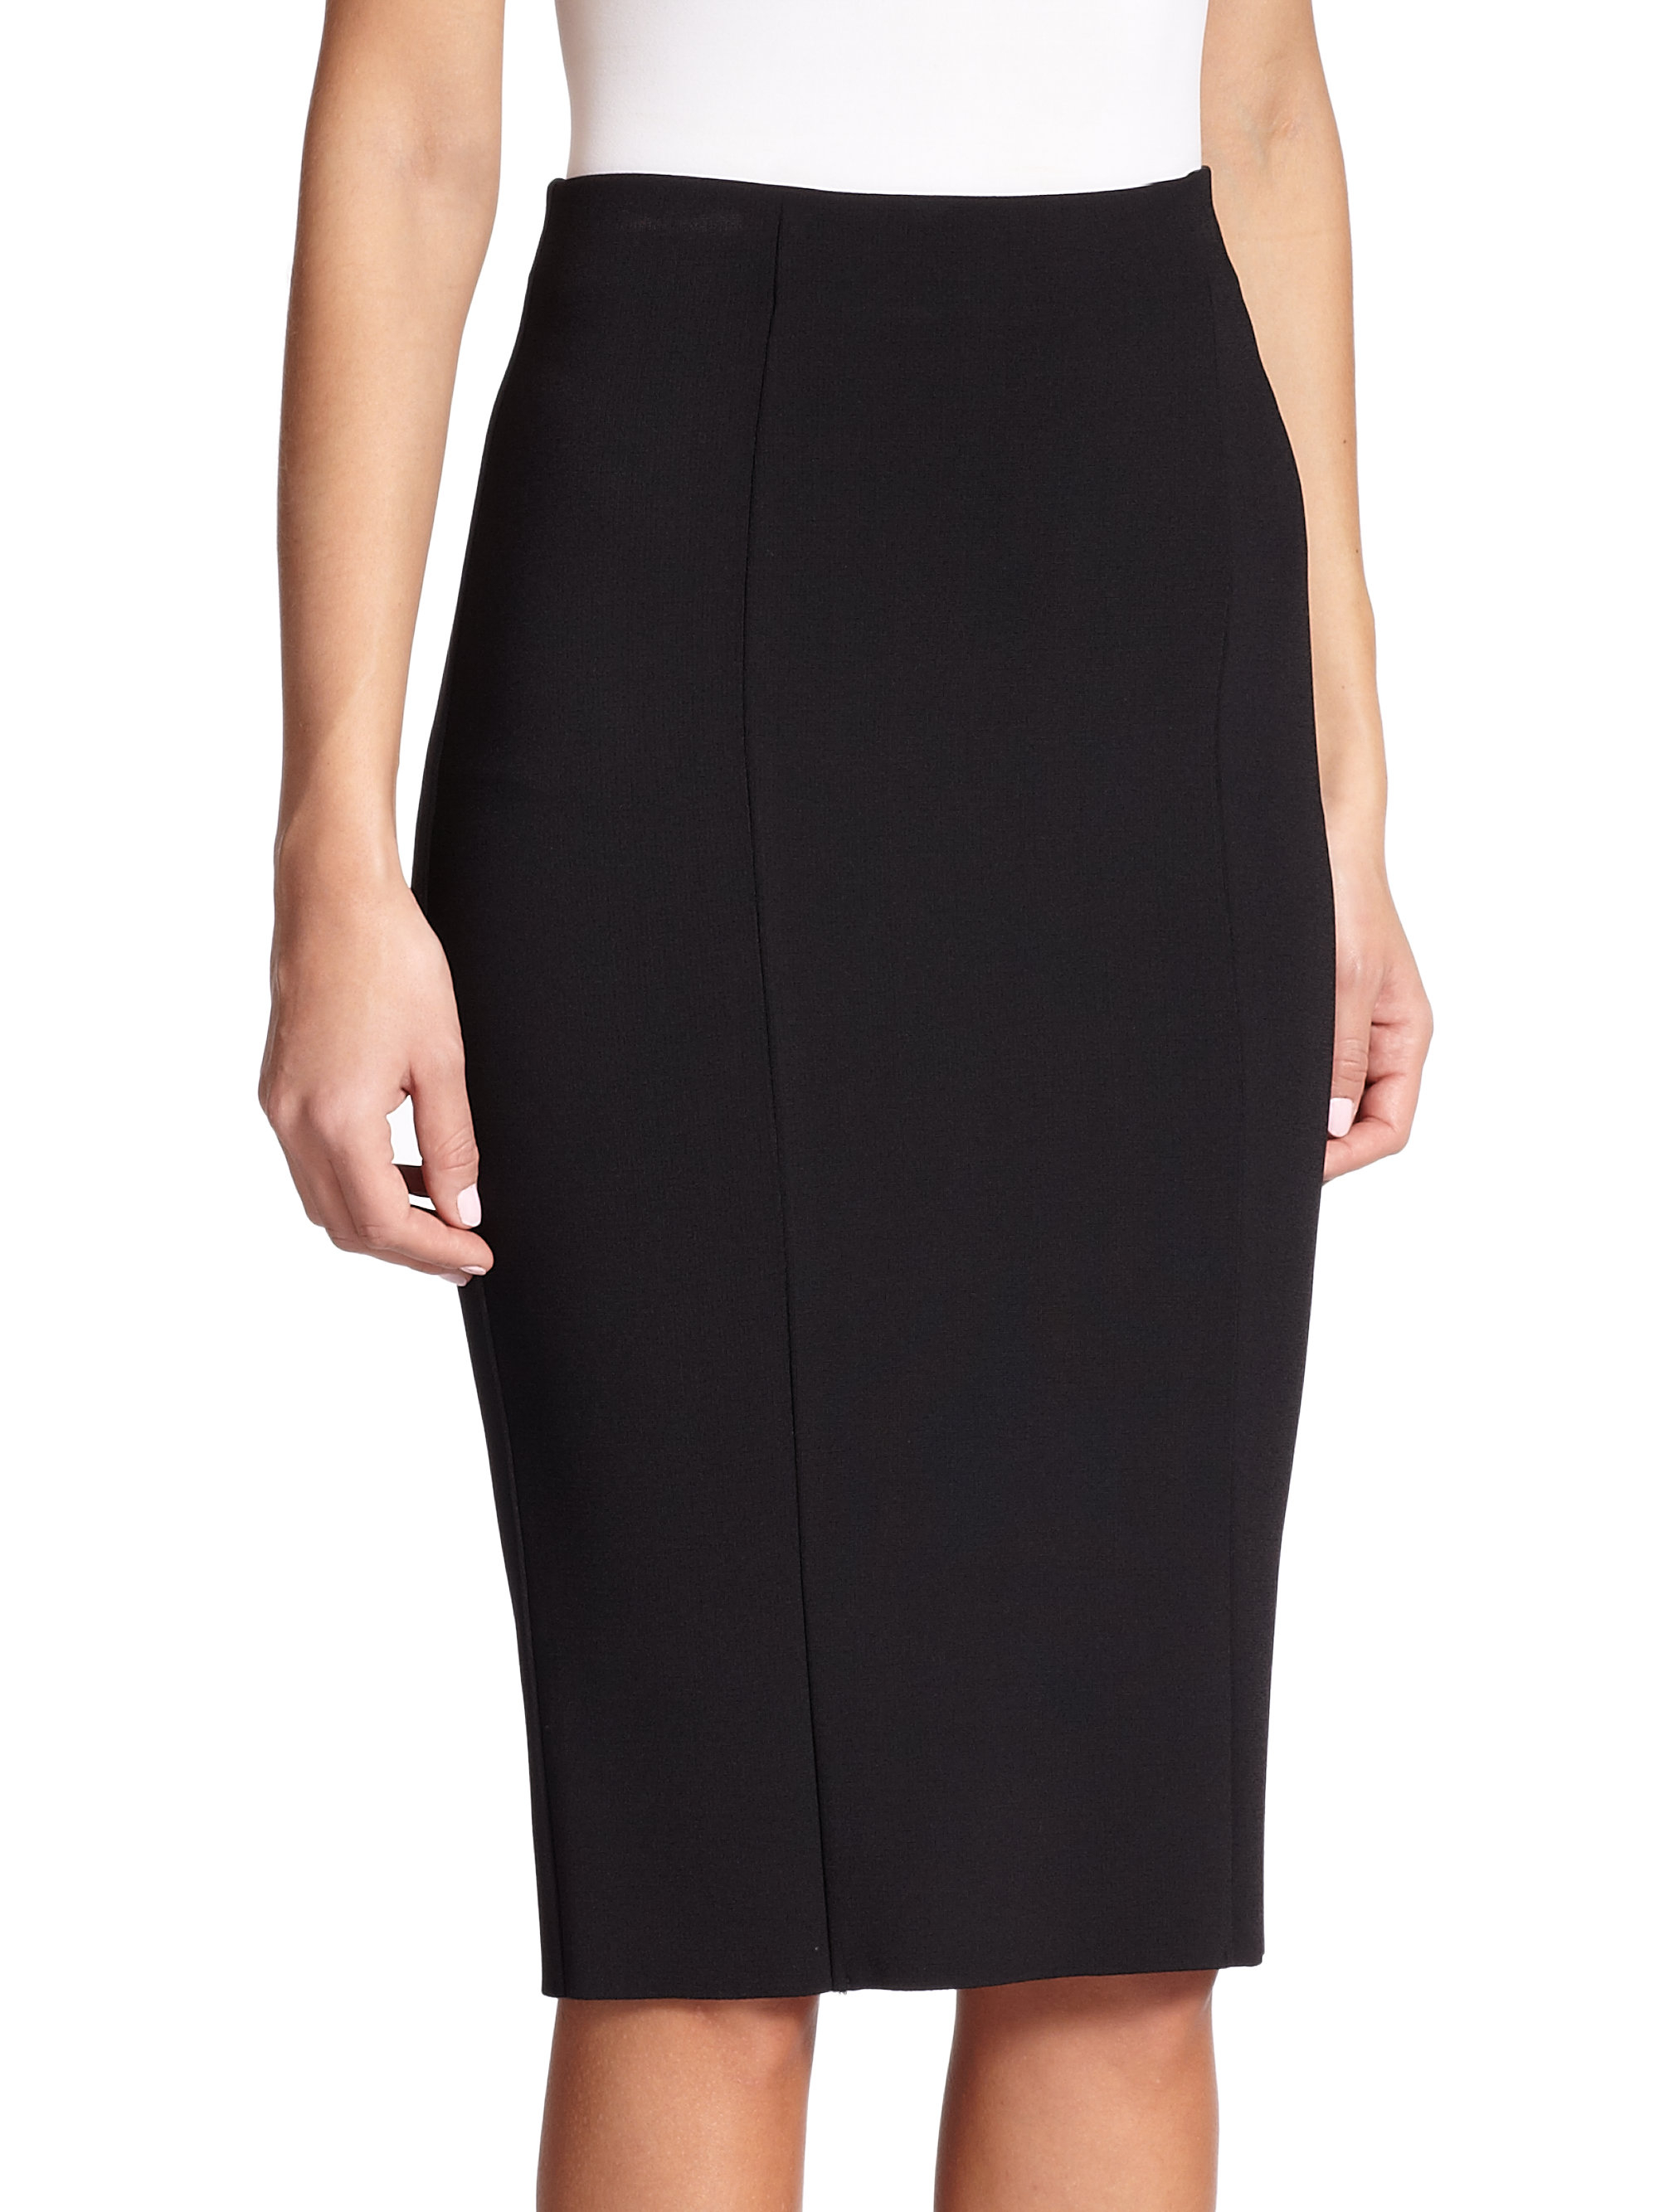 st jersey pencil skirt in black lyst